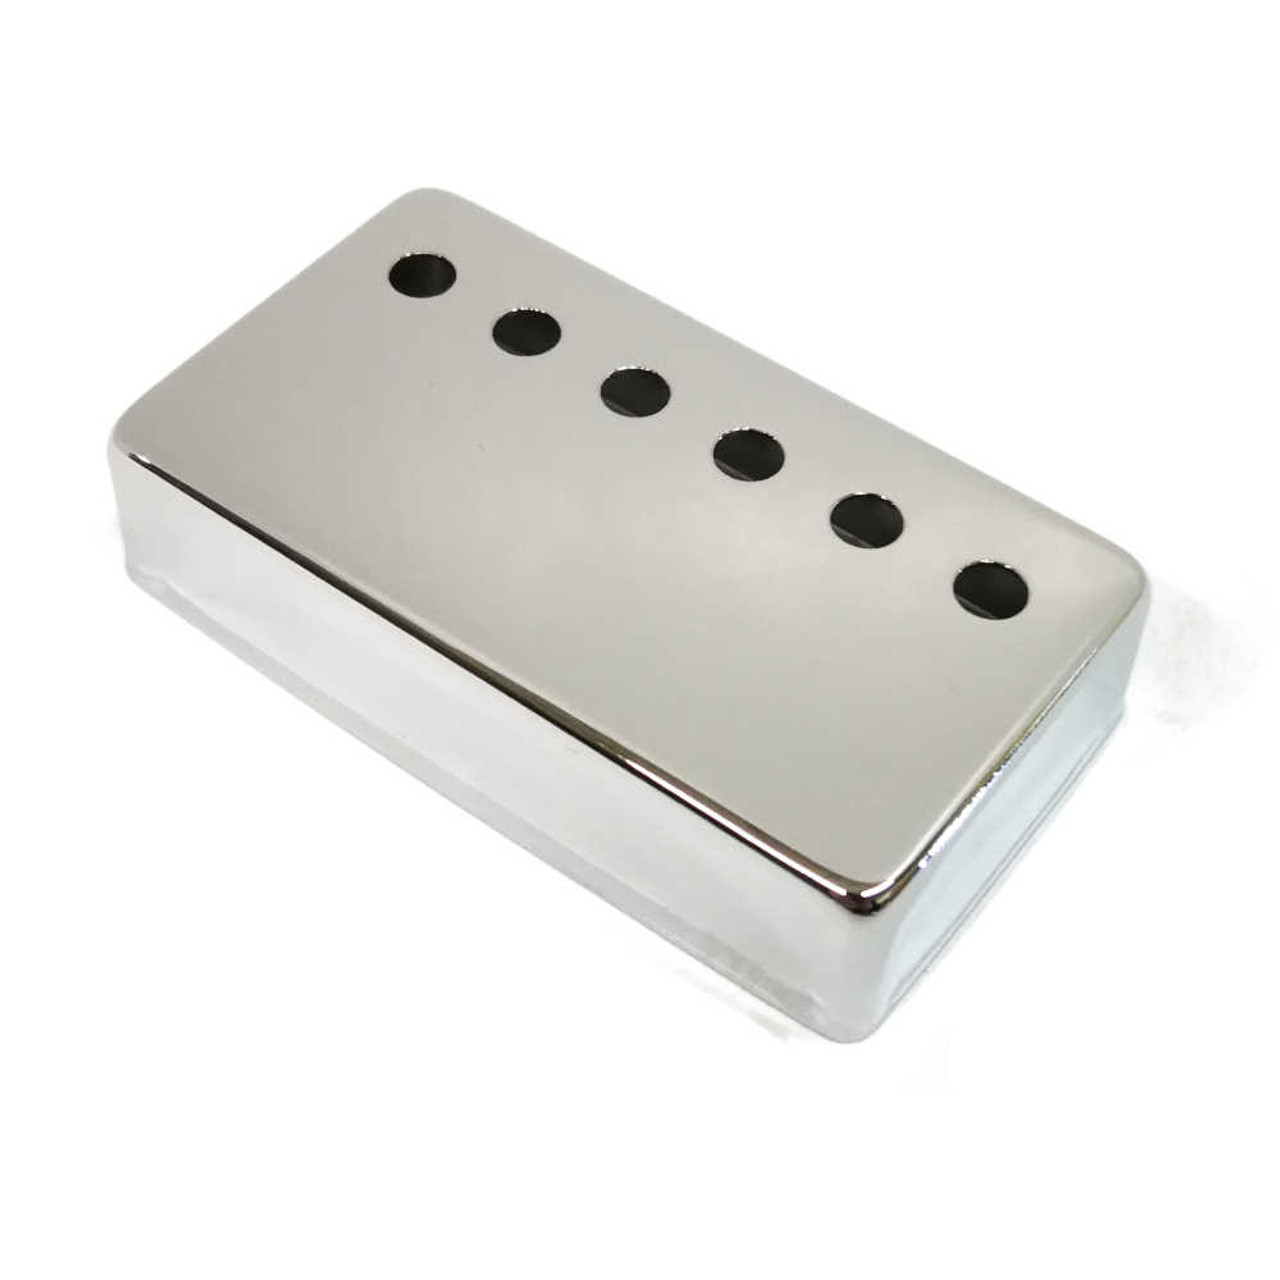 Humbucking Pickup Cover - 52mm Chrome (plated nickel/silver)